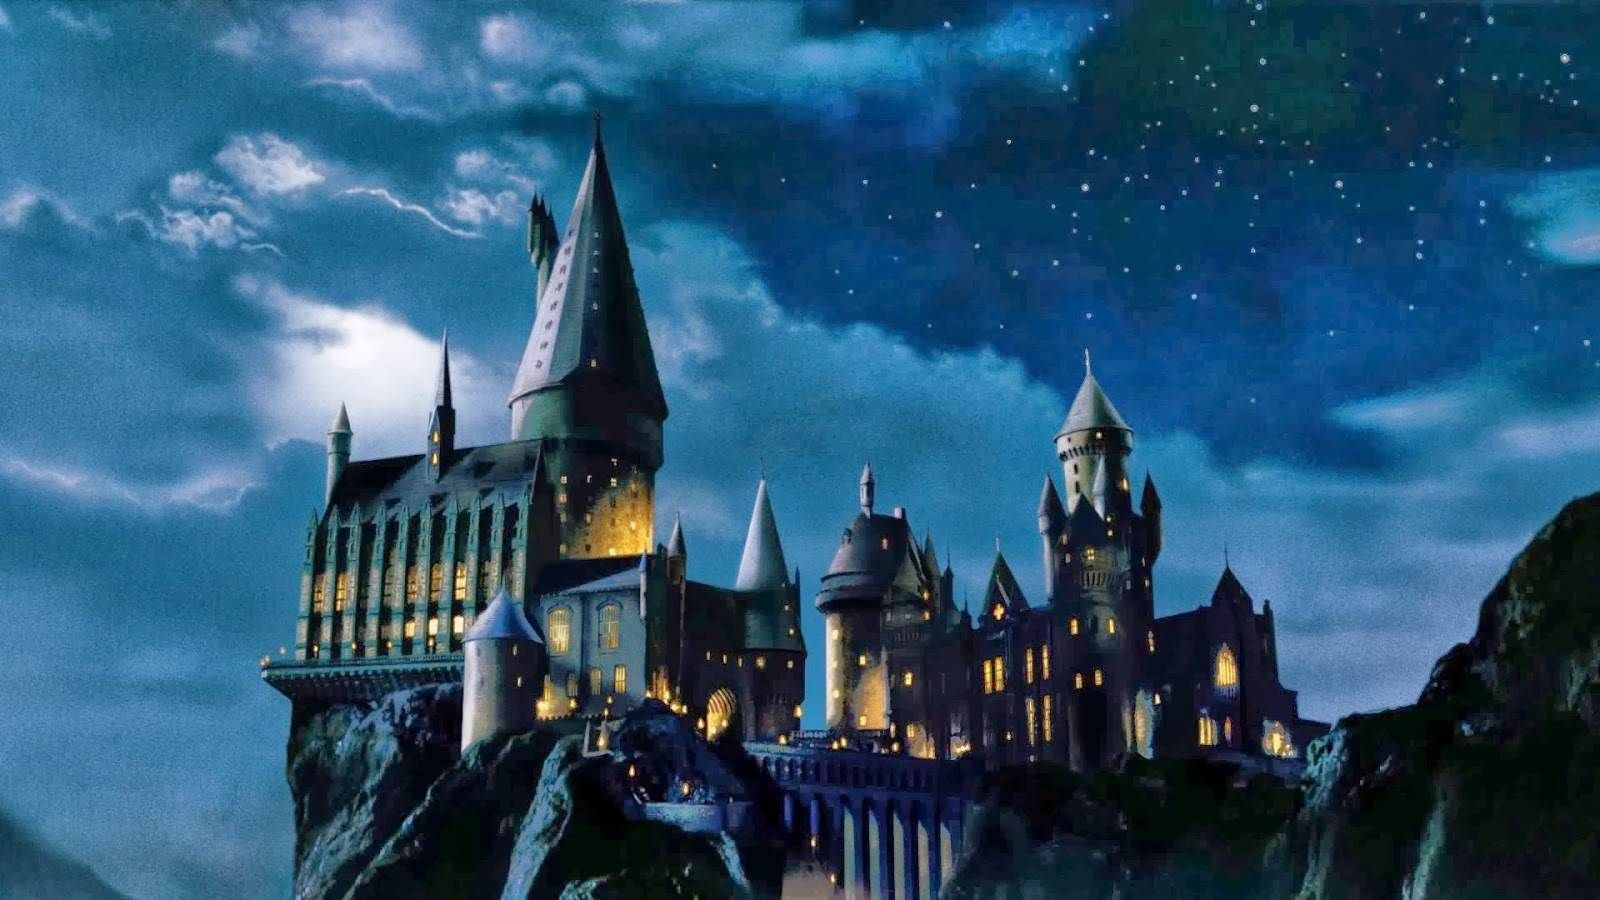 1600x900 Harry Potter Wallpaper Hogwarts Wallpaper Desktop Background 1600 ...